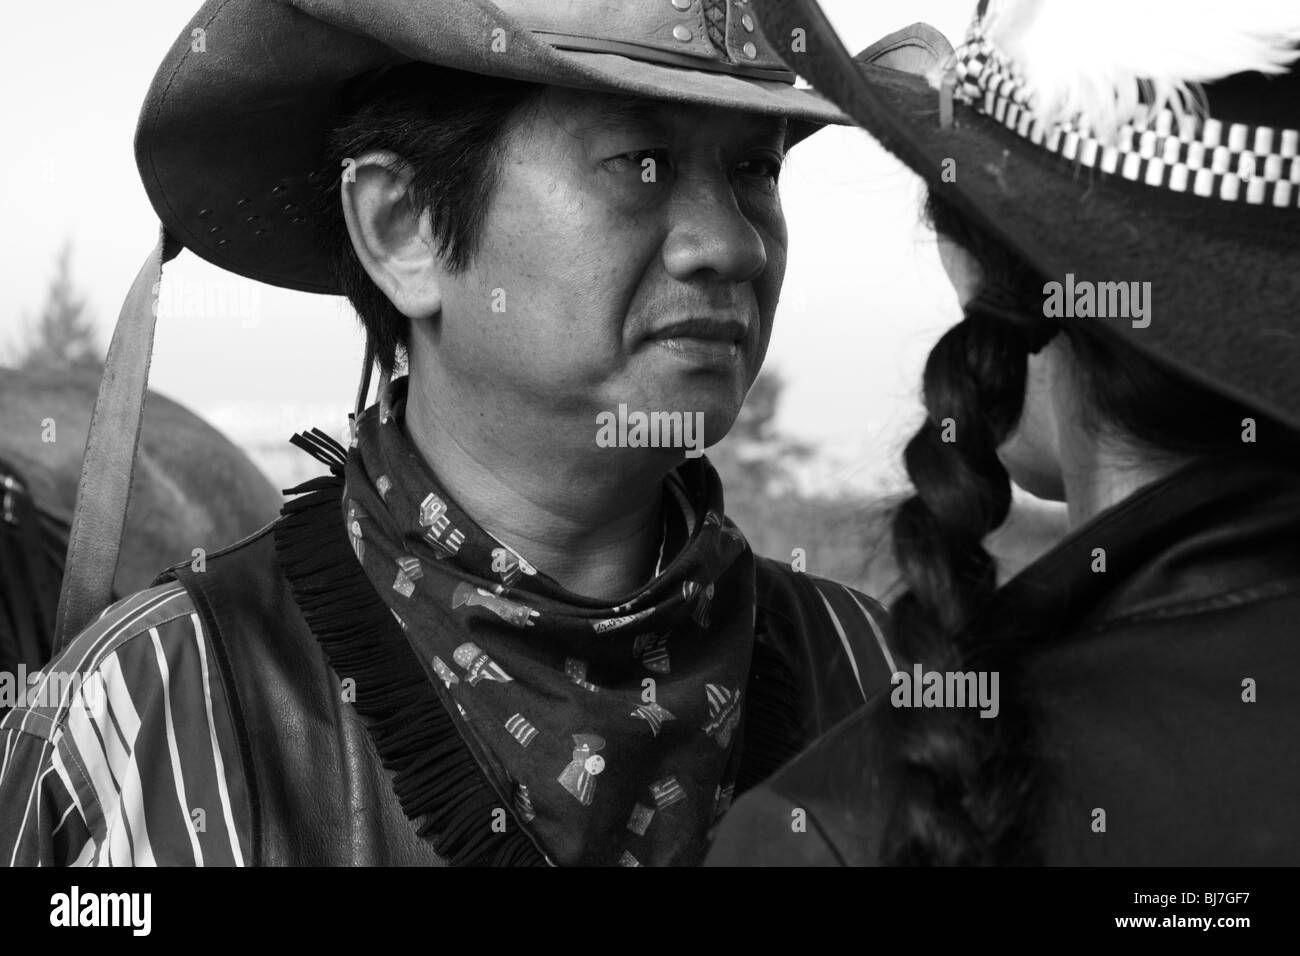 Asian horseback riders stand face to face. - Stock Image